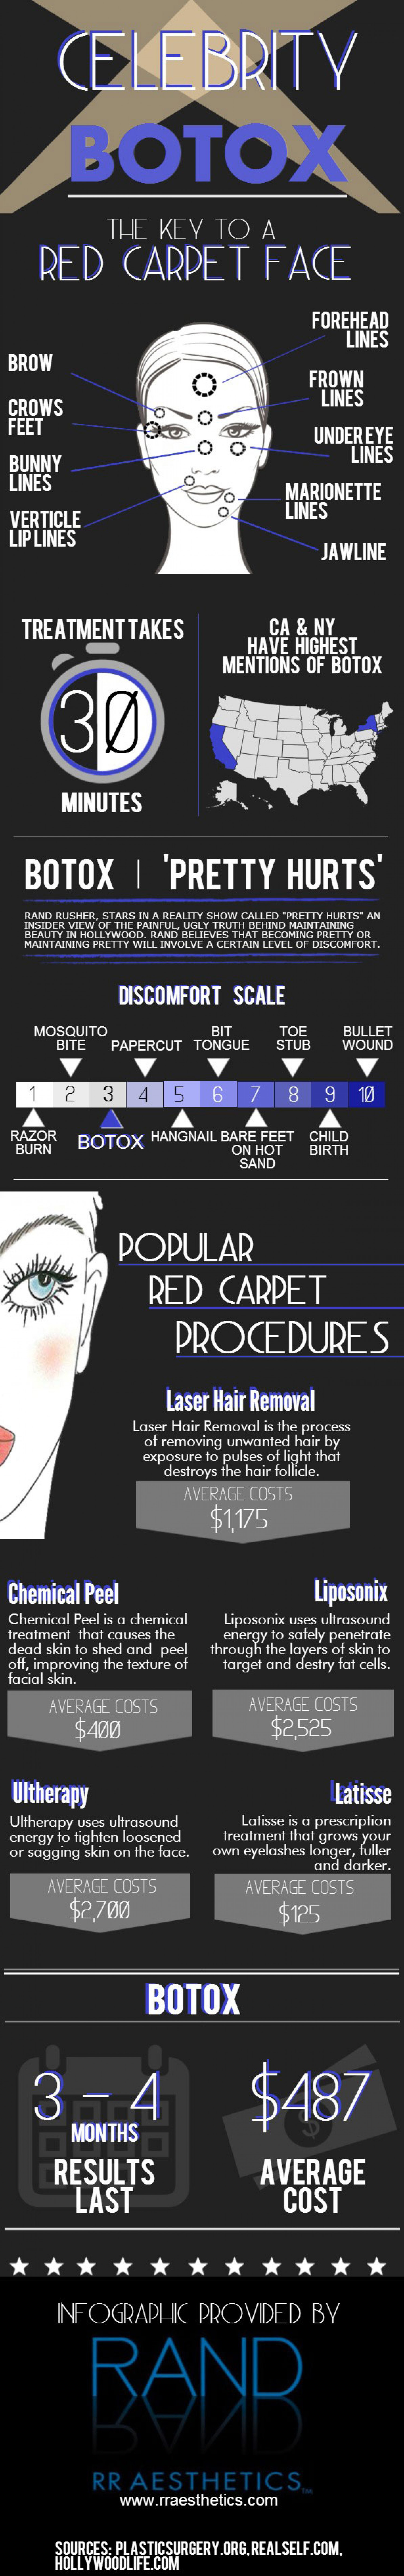 Celebrity Botox - The Key to A Red Carpet Face Infographic